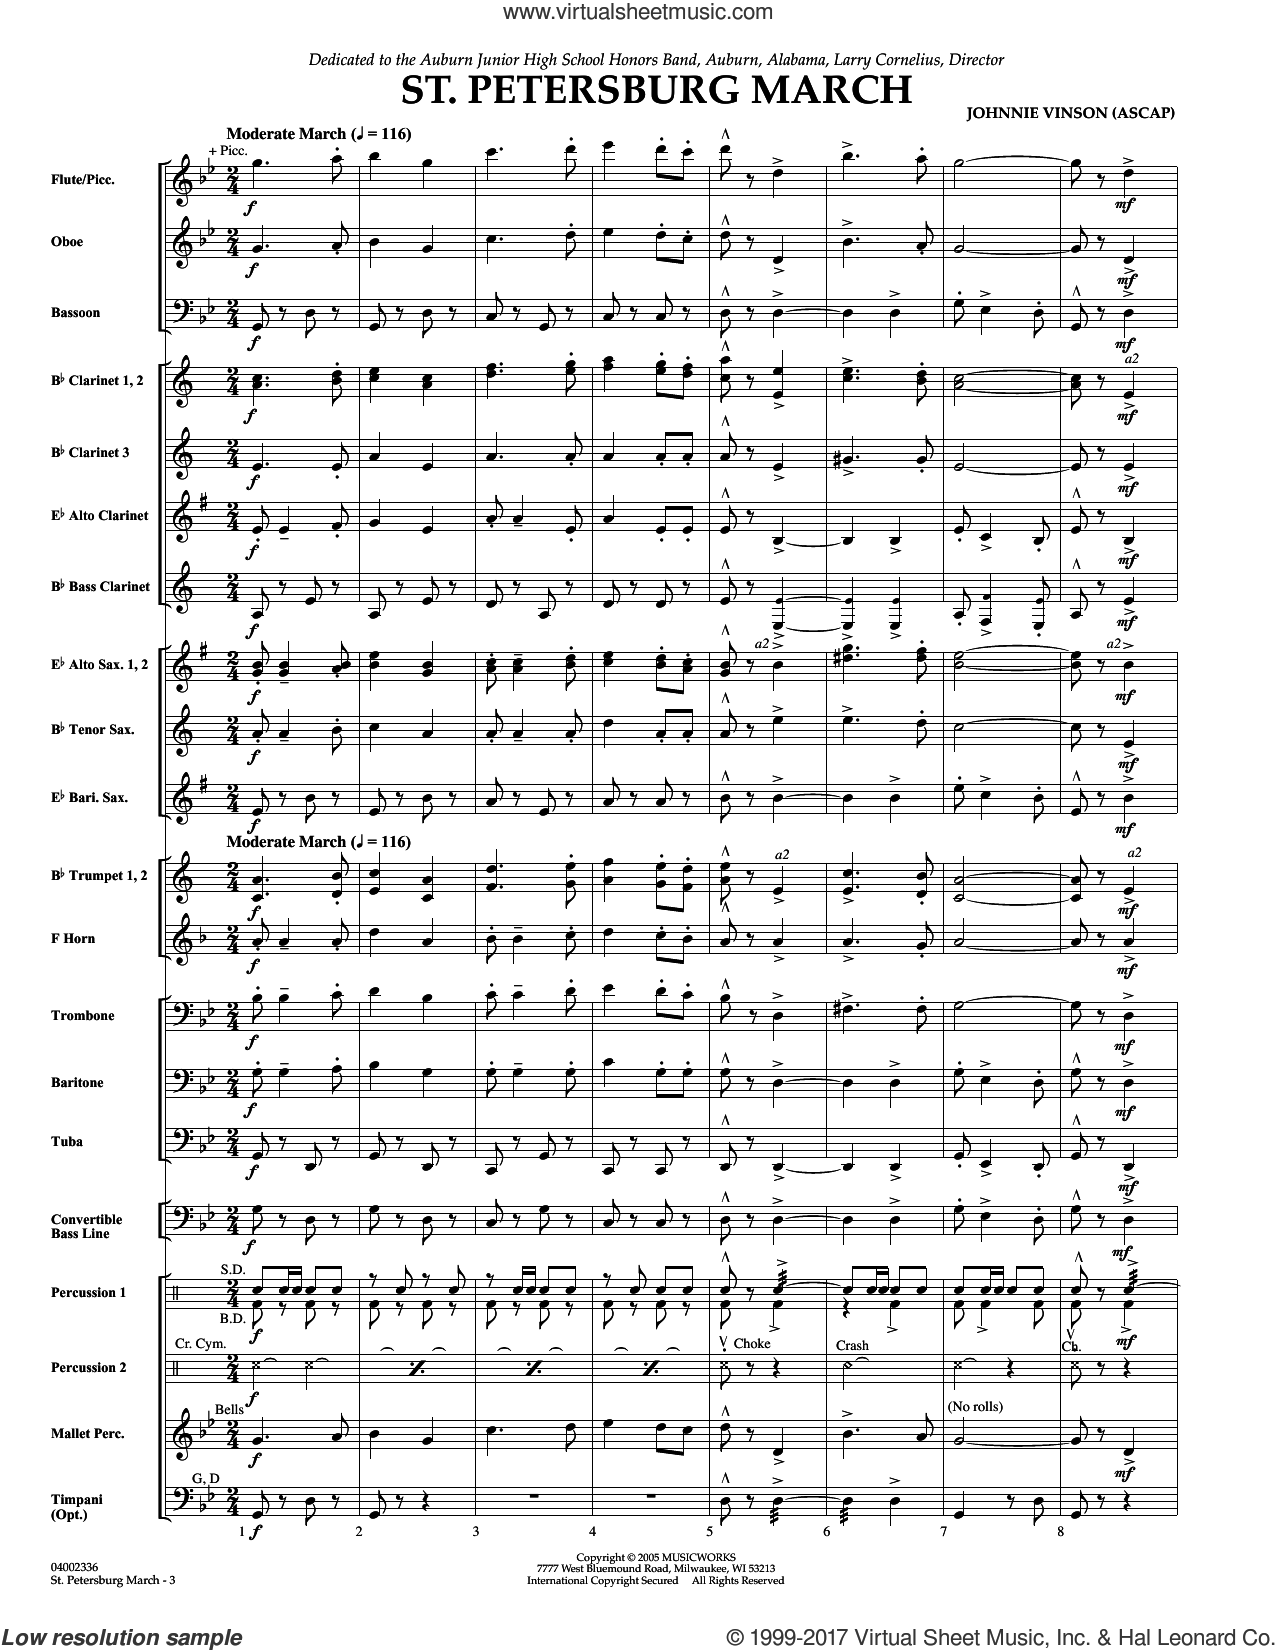 St. Petersburg March (COMPLETE) sheet music for concert band by Johnnie Vinson, intermediate skill level